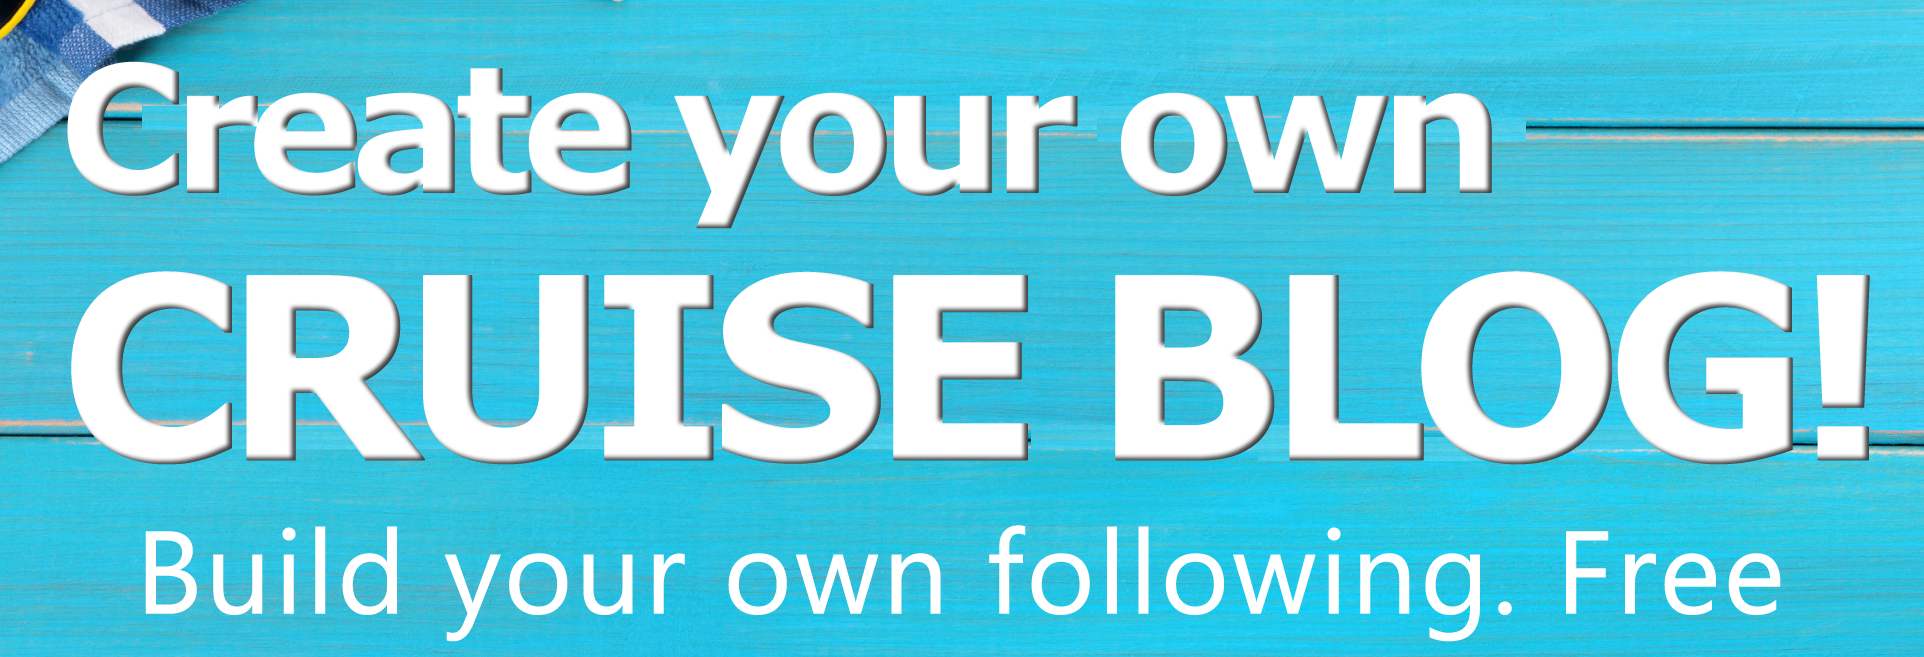 Create your own cruise blog and build your own following today. Free!